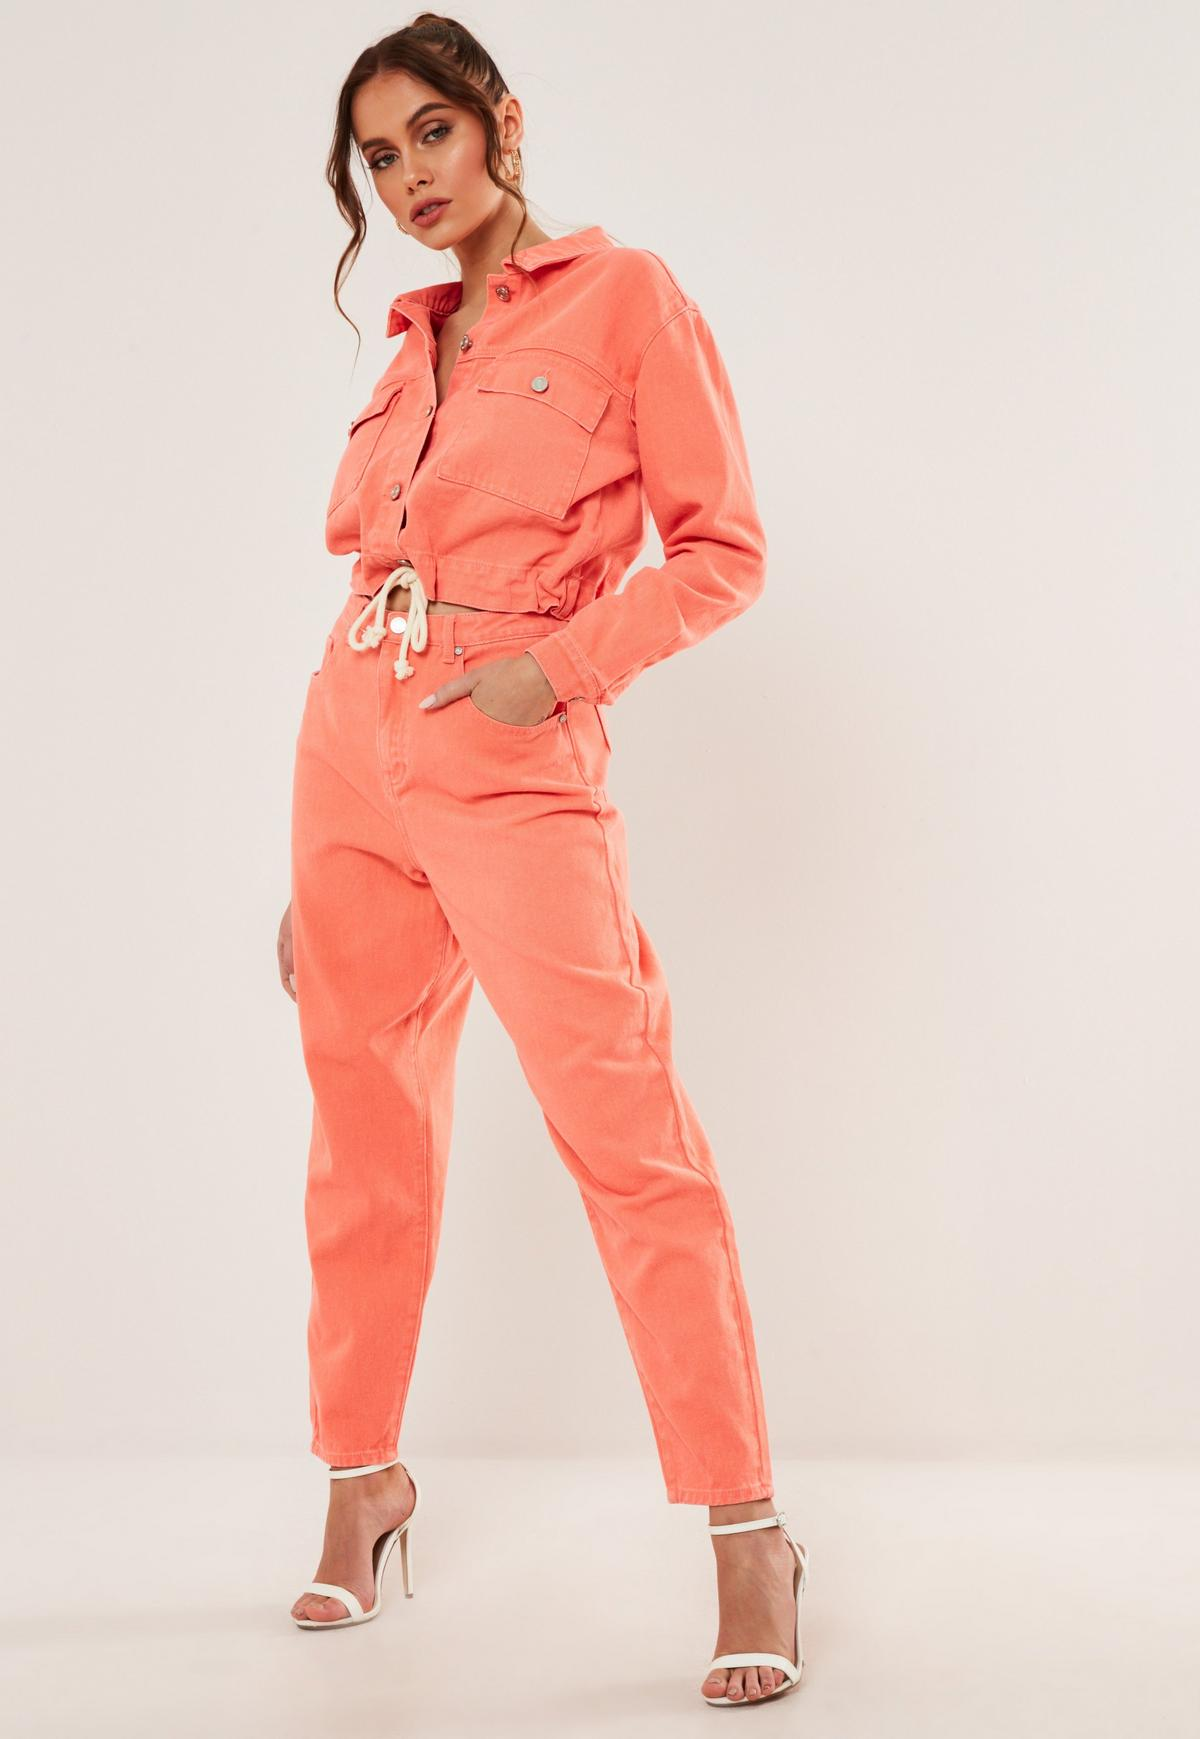 orange co ord super wide leg highwaisted tapered jeans by Misguided, available on missguided.eu for EUR22 Yovanna Ventura Pants Exact Product